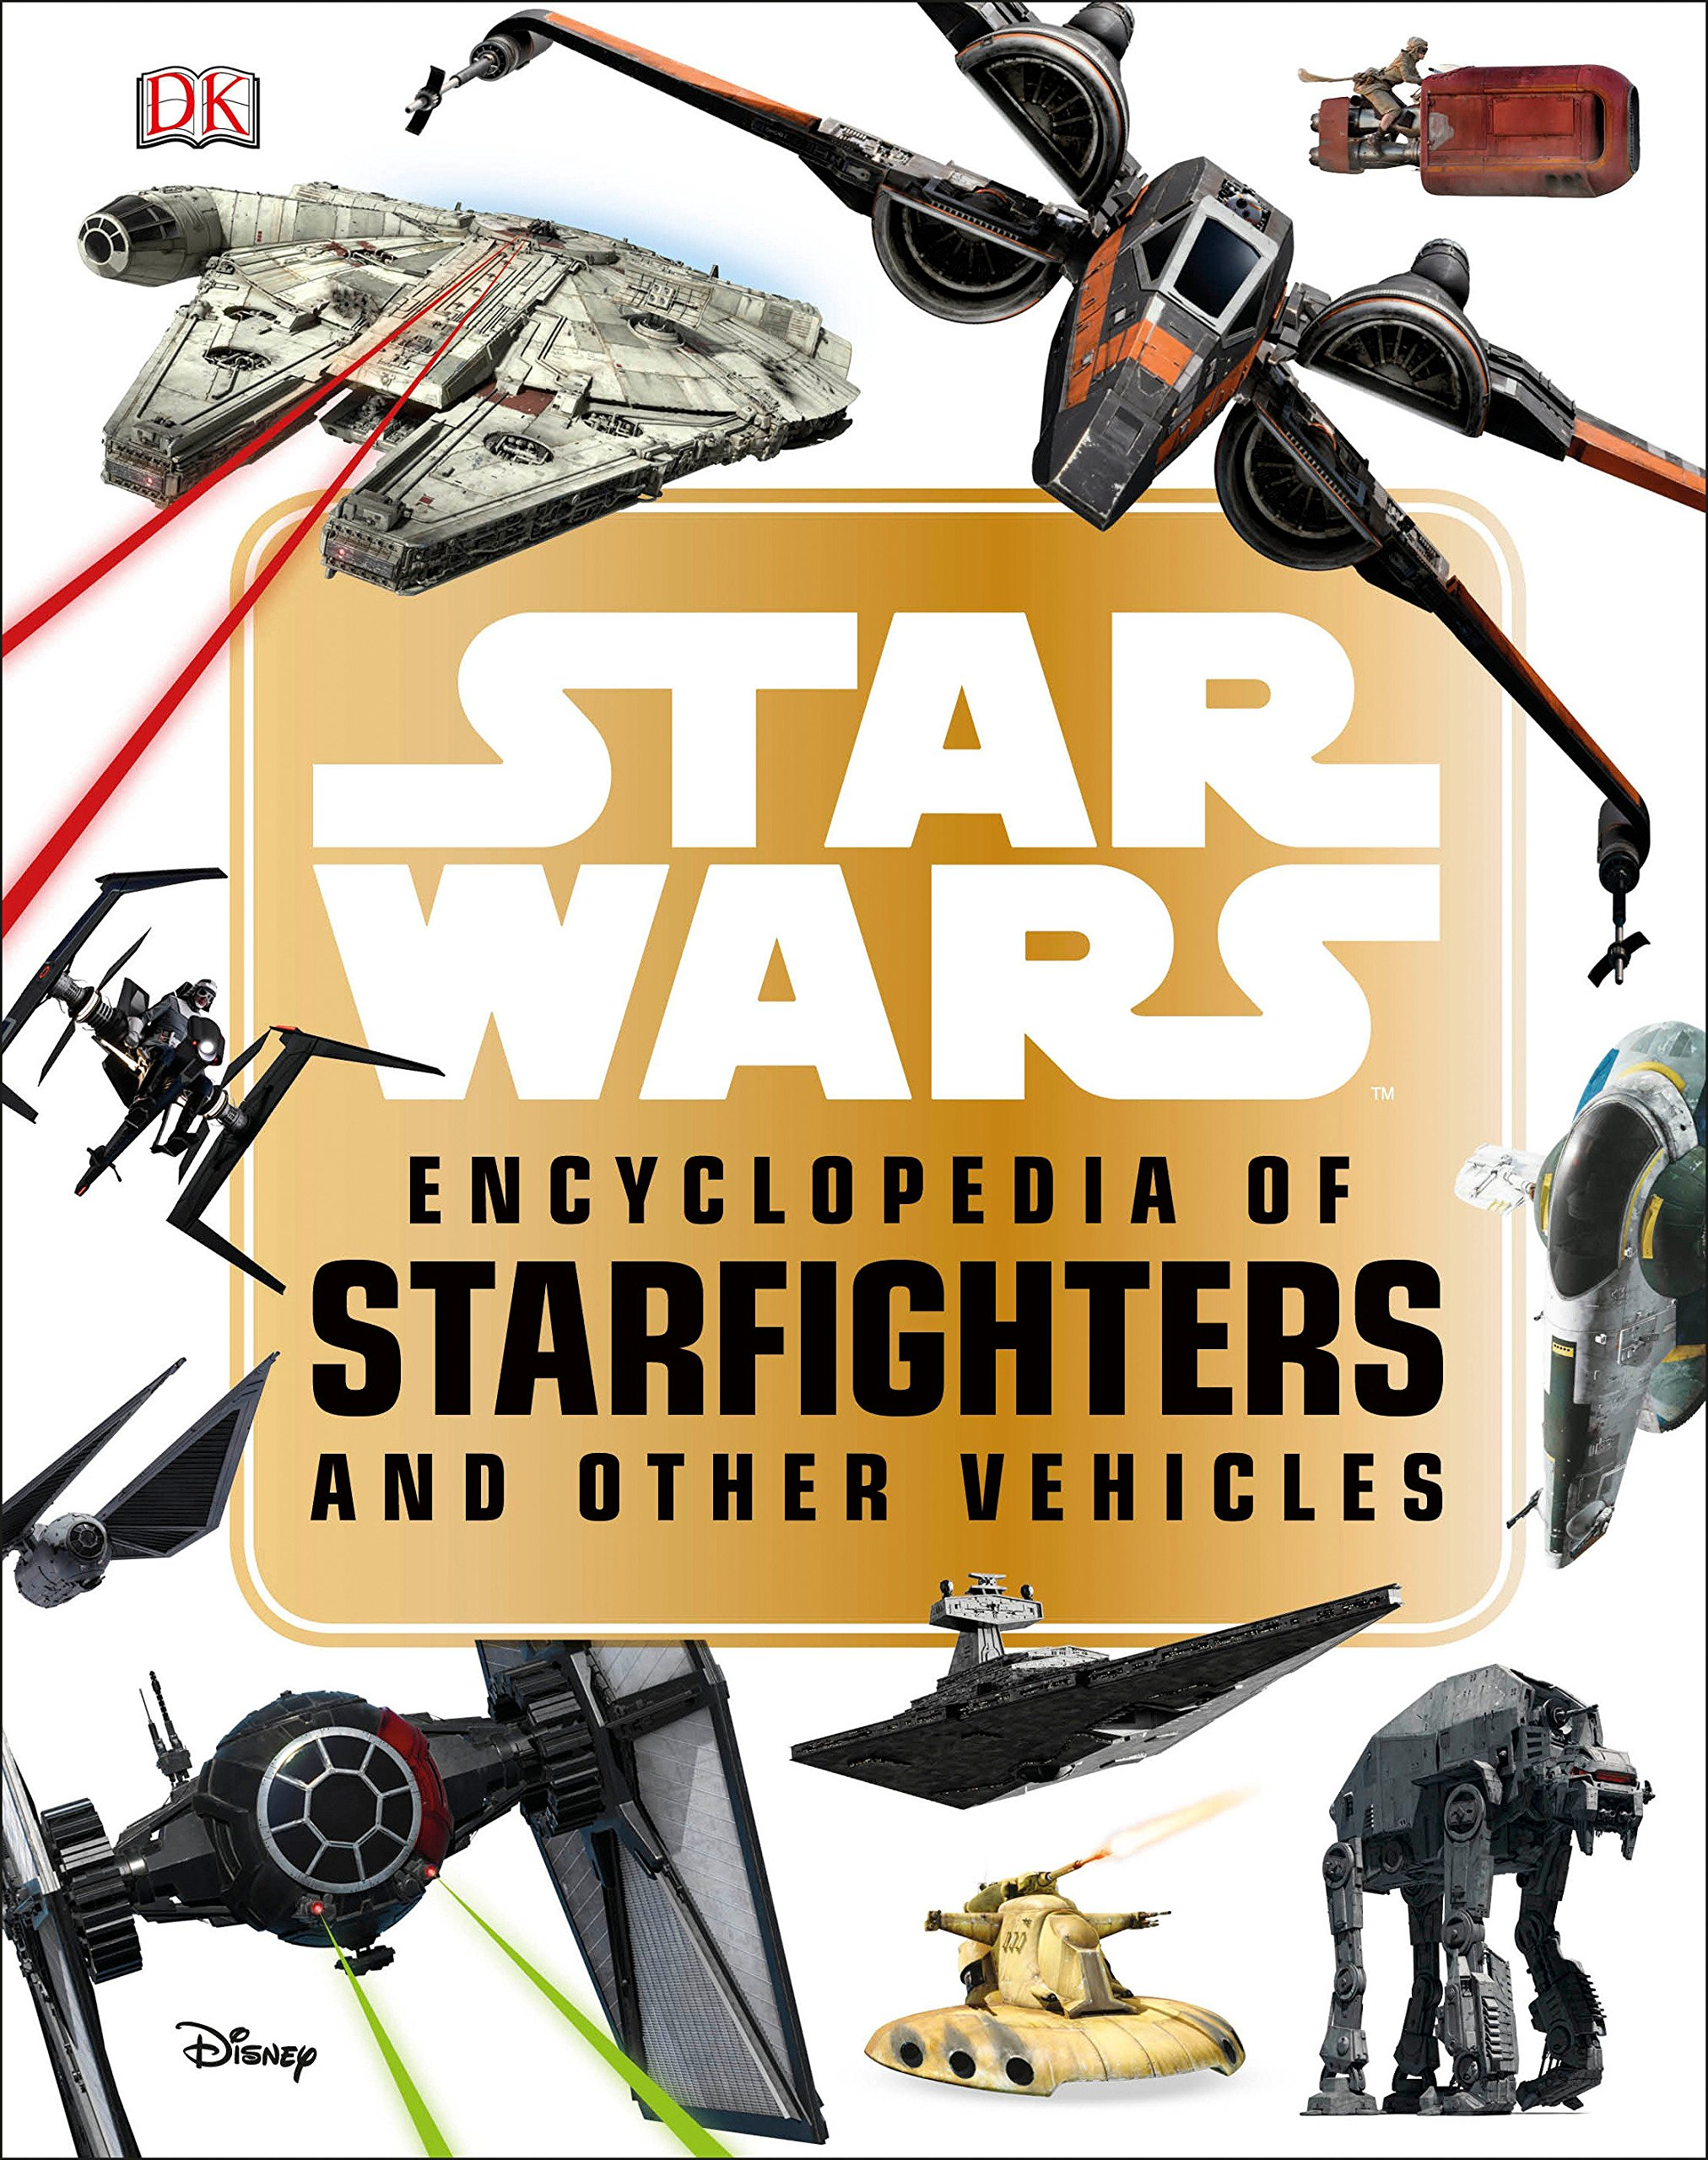 Star Wars  Encyclopedia of Starfighters and Other Vehicles by DK Publishing (Image #7)